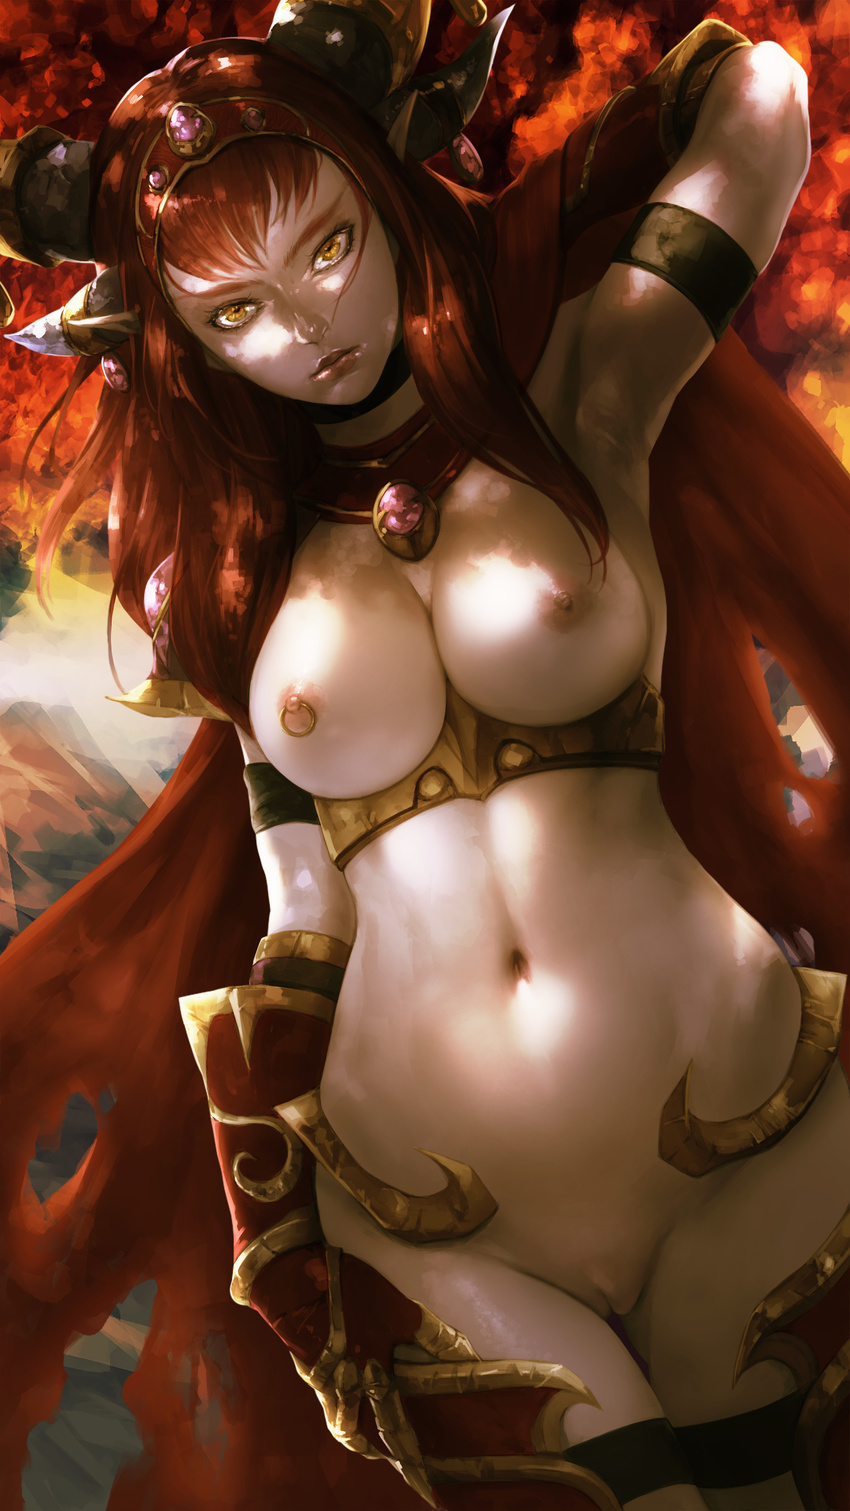 1girl alexstrasza areolae armor artist_request breasts cape choker gloves hairband hand_behind_head heroes_of_the_storm horns looking_at_viewer navel necklace nipple_piercing nipples pale_skin pointy_ears pussy red_hair solo torn_cape uncensored world_of_warcraft yellow_eyes